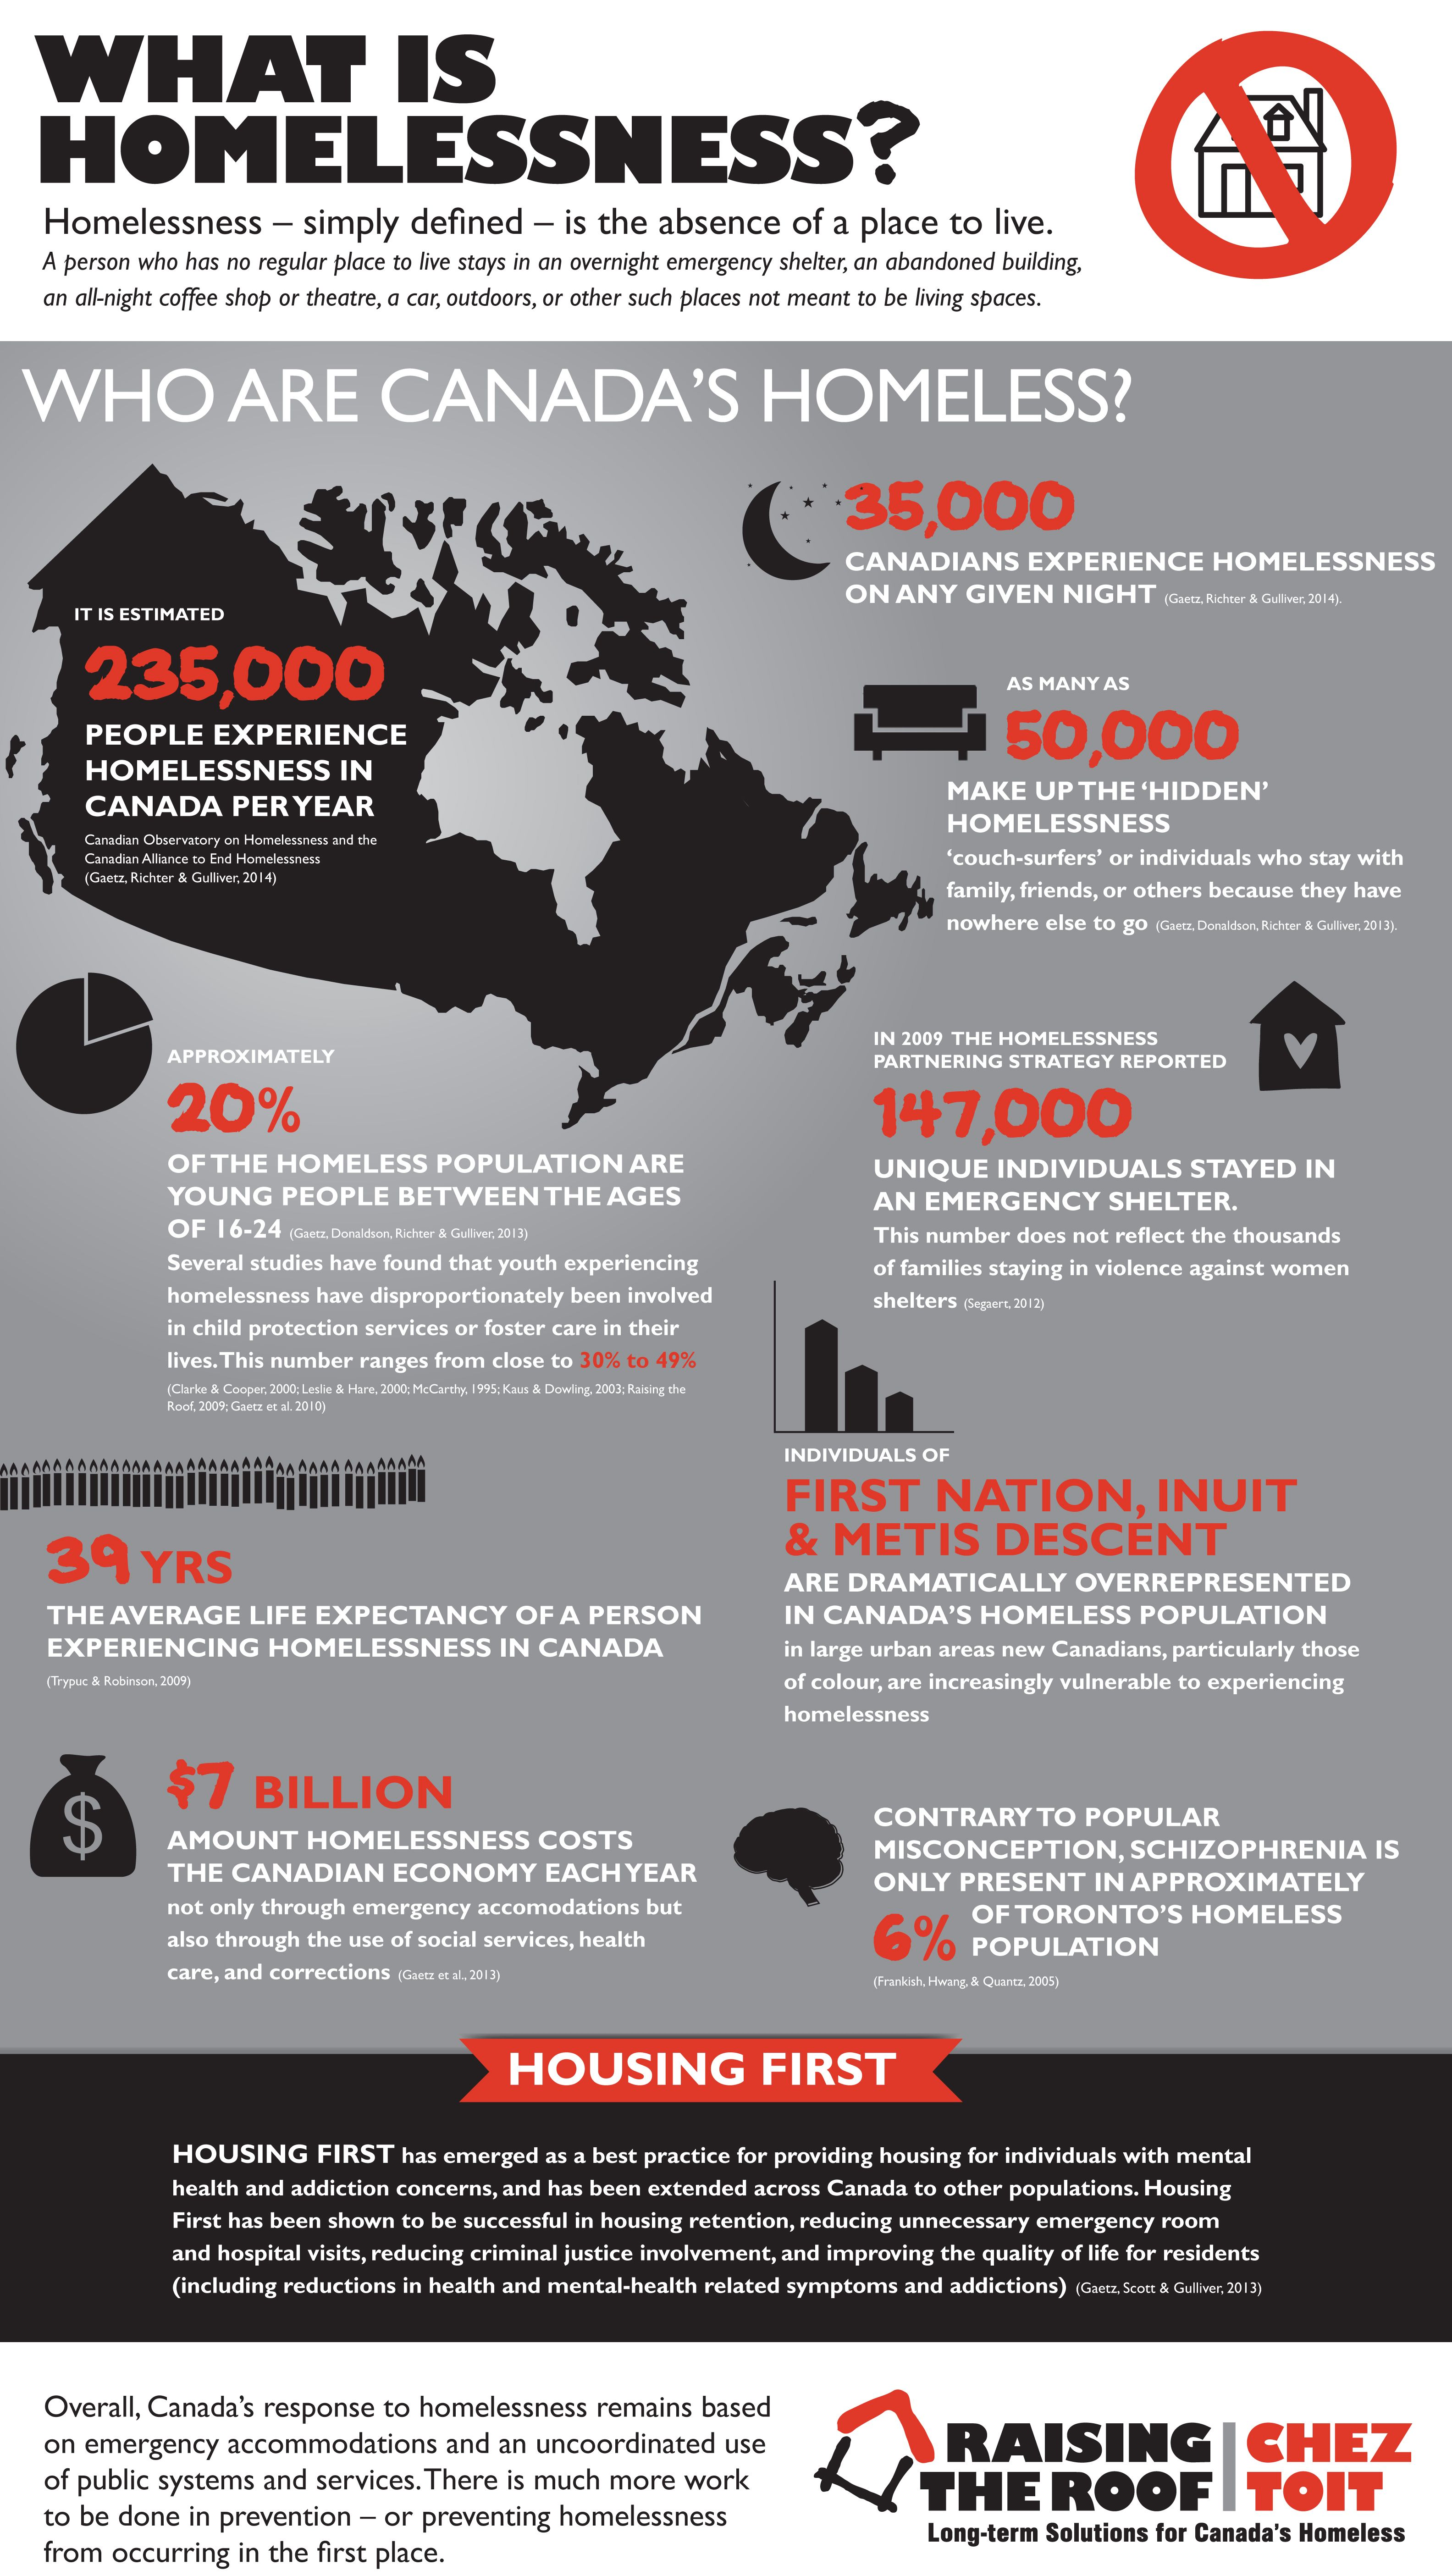 the growing problem of homelessness in canada Despite sporadic success in addressing homelessness in canada, little progress   solution, says a national report into the extent of the problem  in almost every  urban centre in canada, with the over-representation growing.